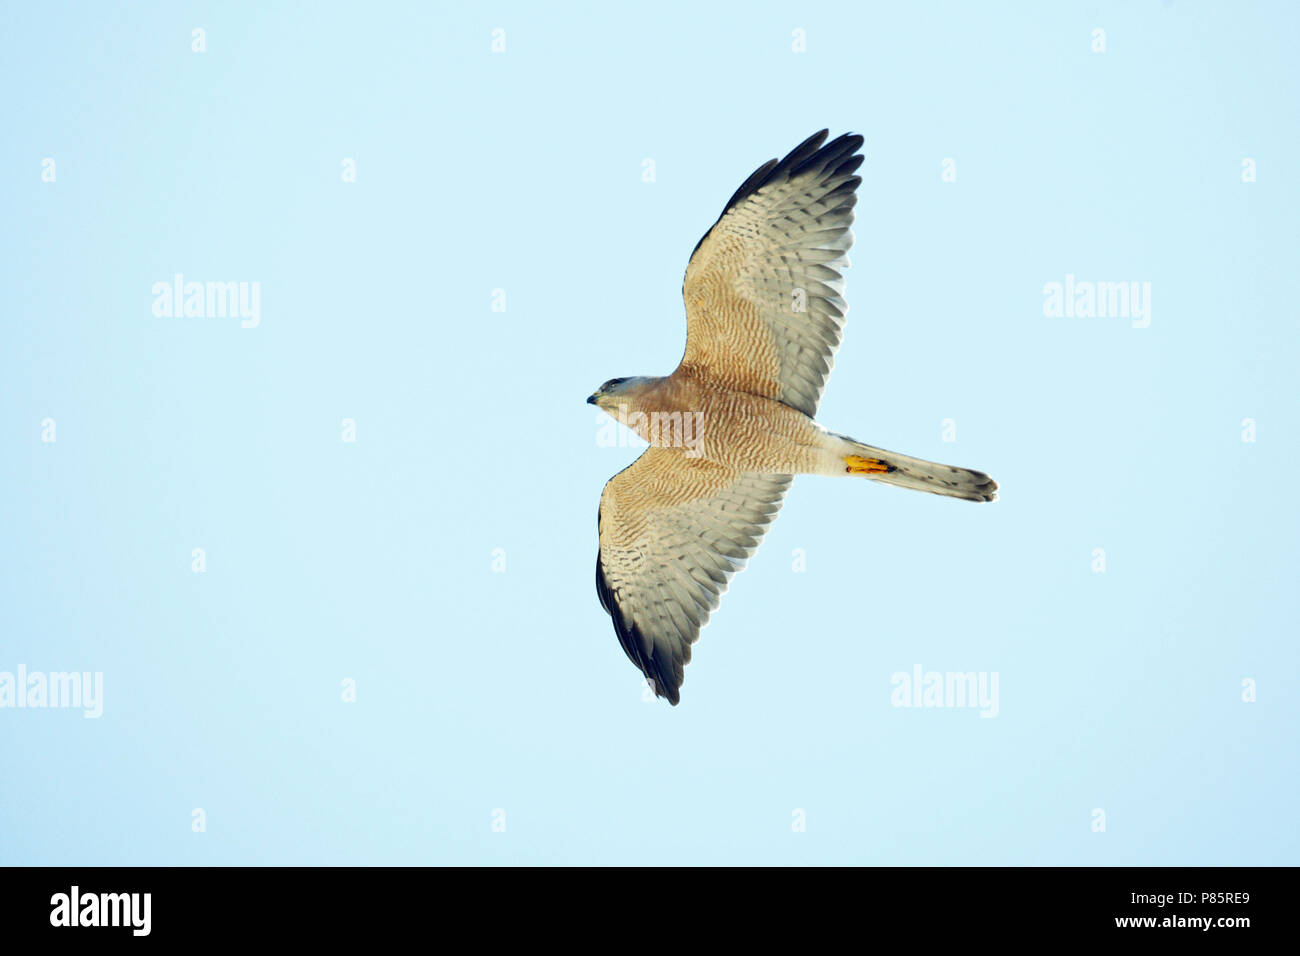 Vrouwtje Balkansperwer in vlucht, Levant Sparrowhawk (Accipiter brevipes) adult male in flight - Stock Image